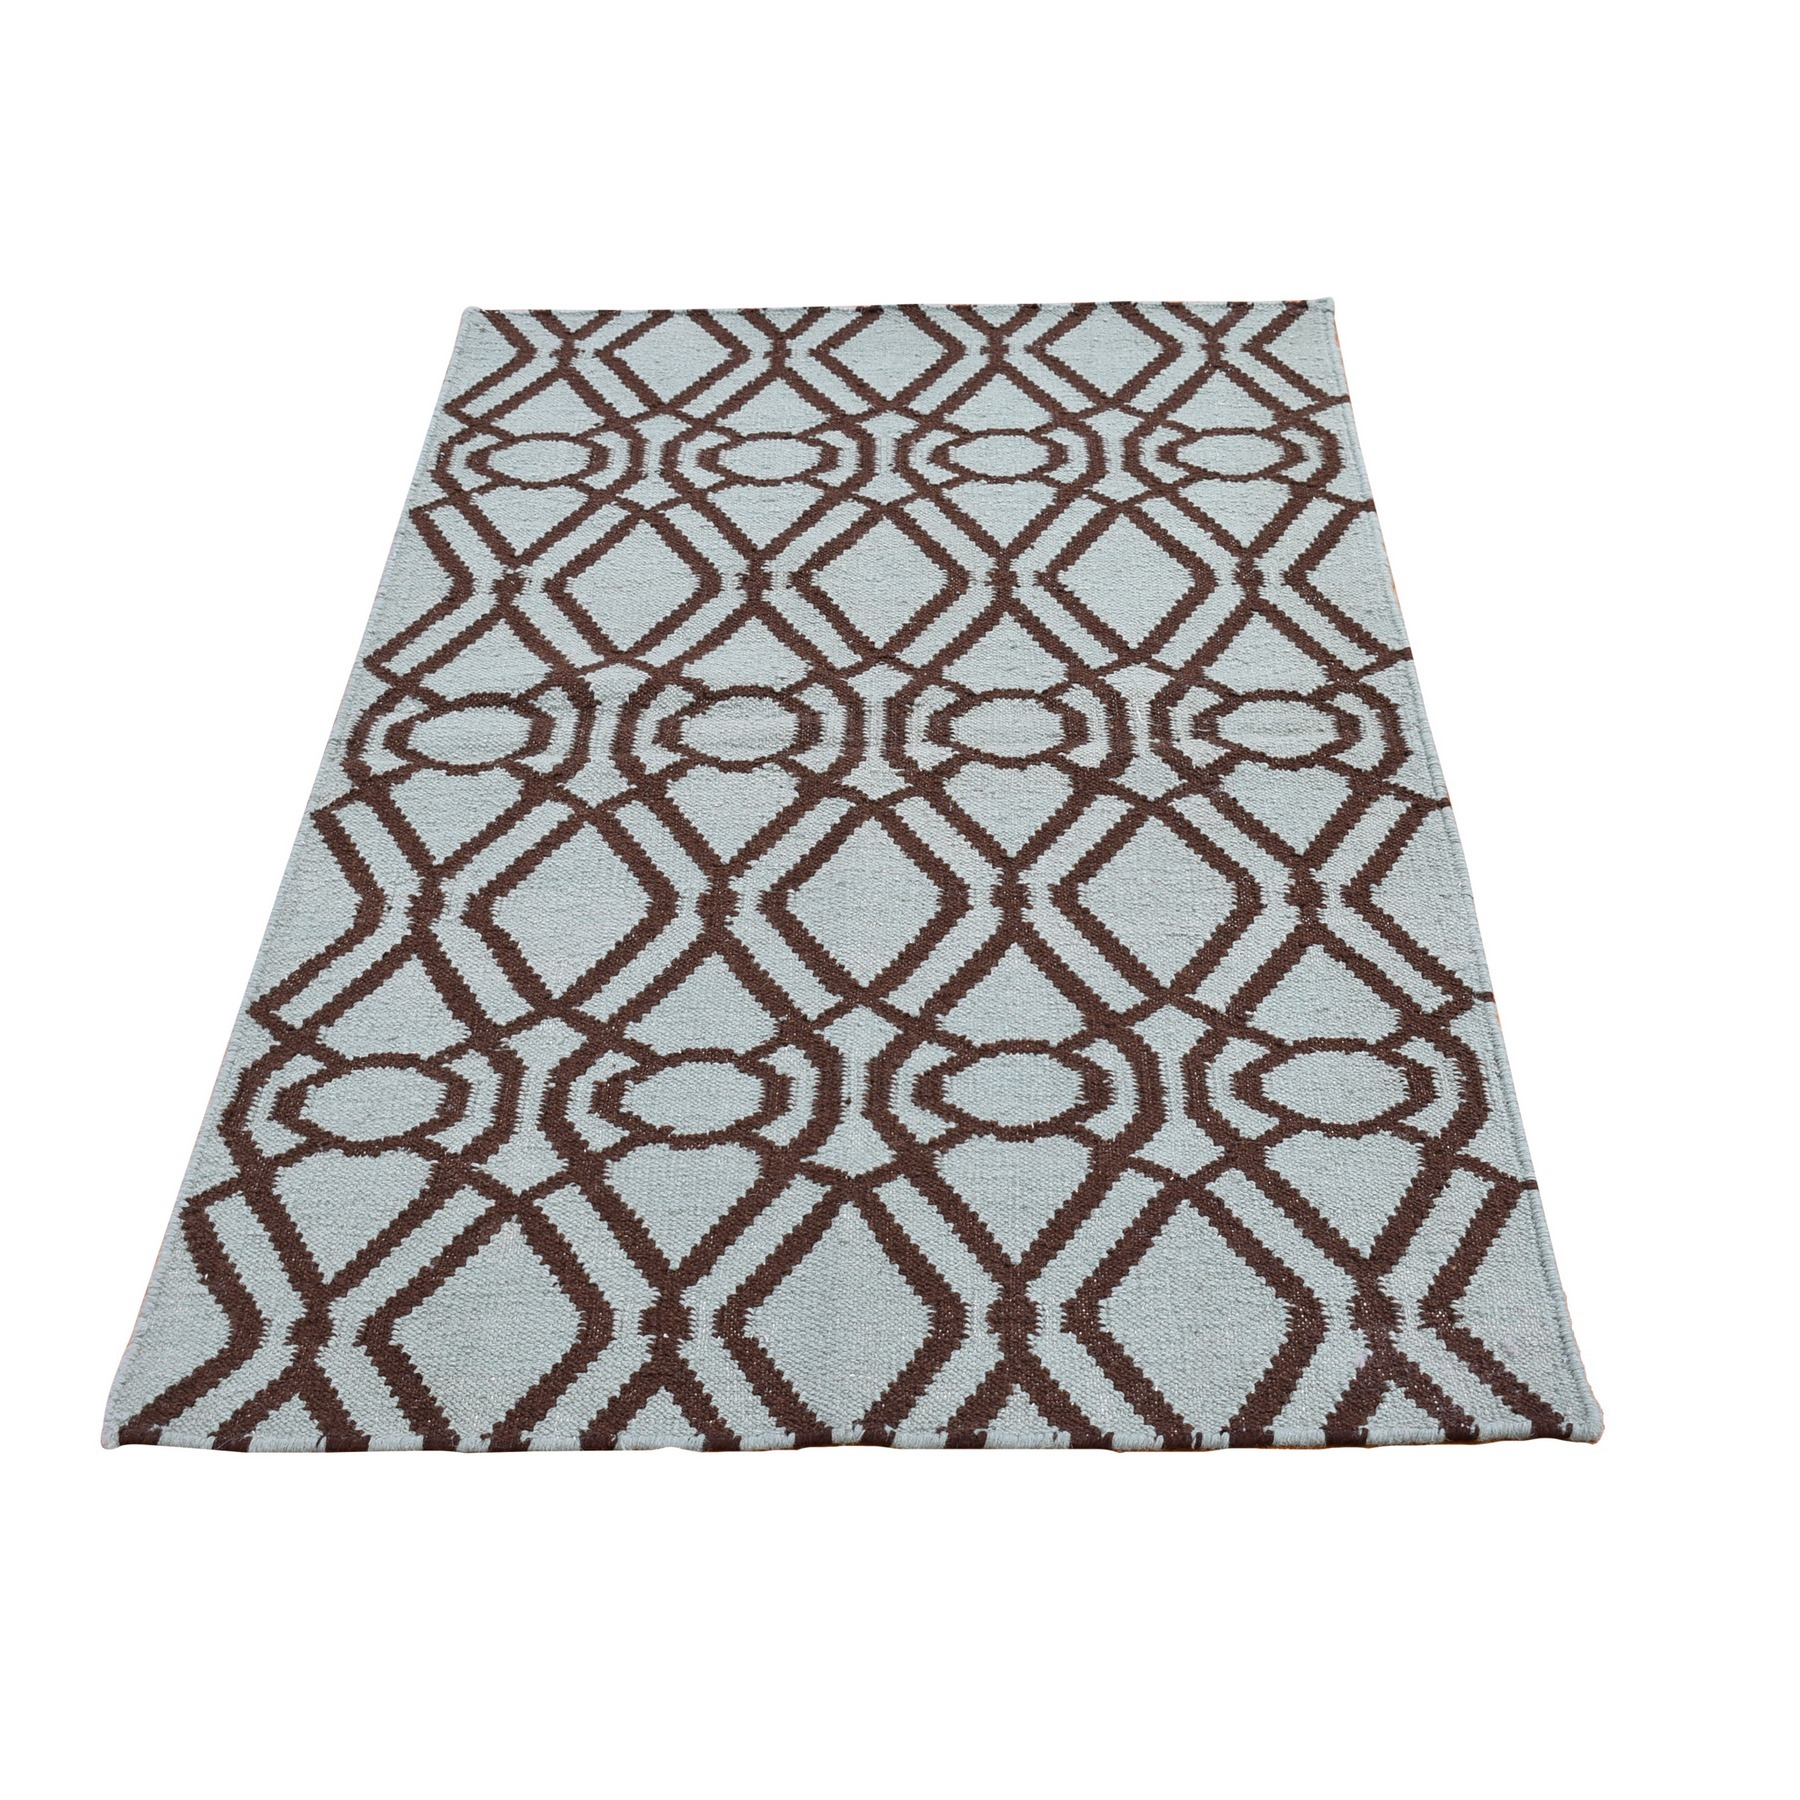 "3'2""x5' Light Green and Charcoal Brown Pure Wool Reversible Kilim Flat Weave Hand Woven Oriental Rug"